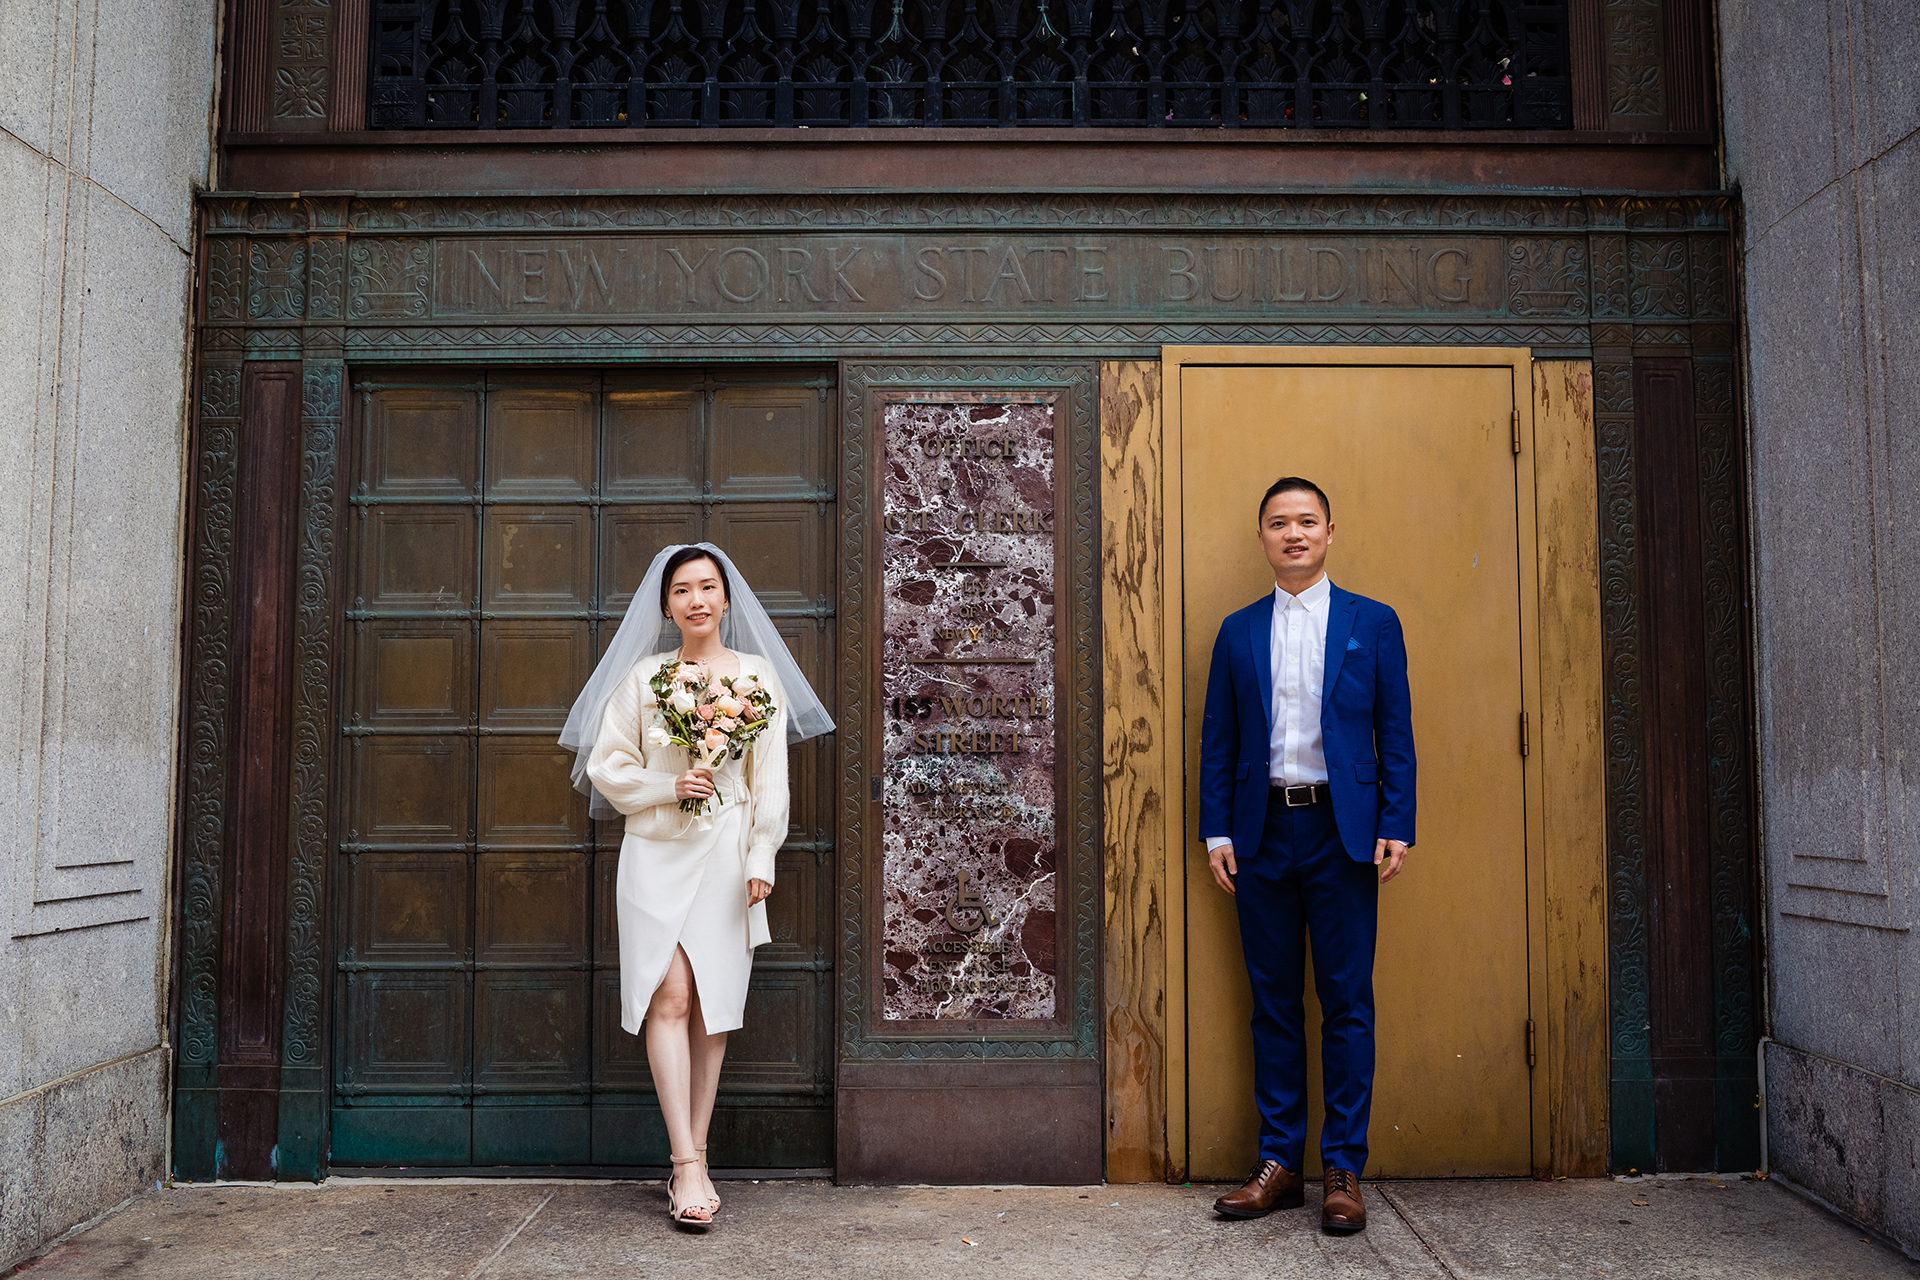 NYC - City Clerk Elopement Couple Portrait | The vibrant whites and blues of the young couple's wedding colors